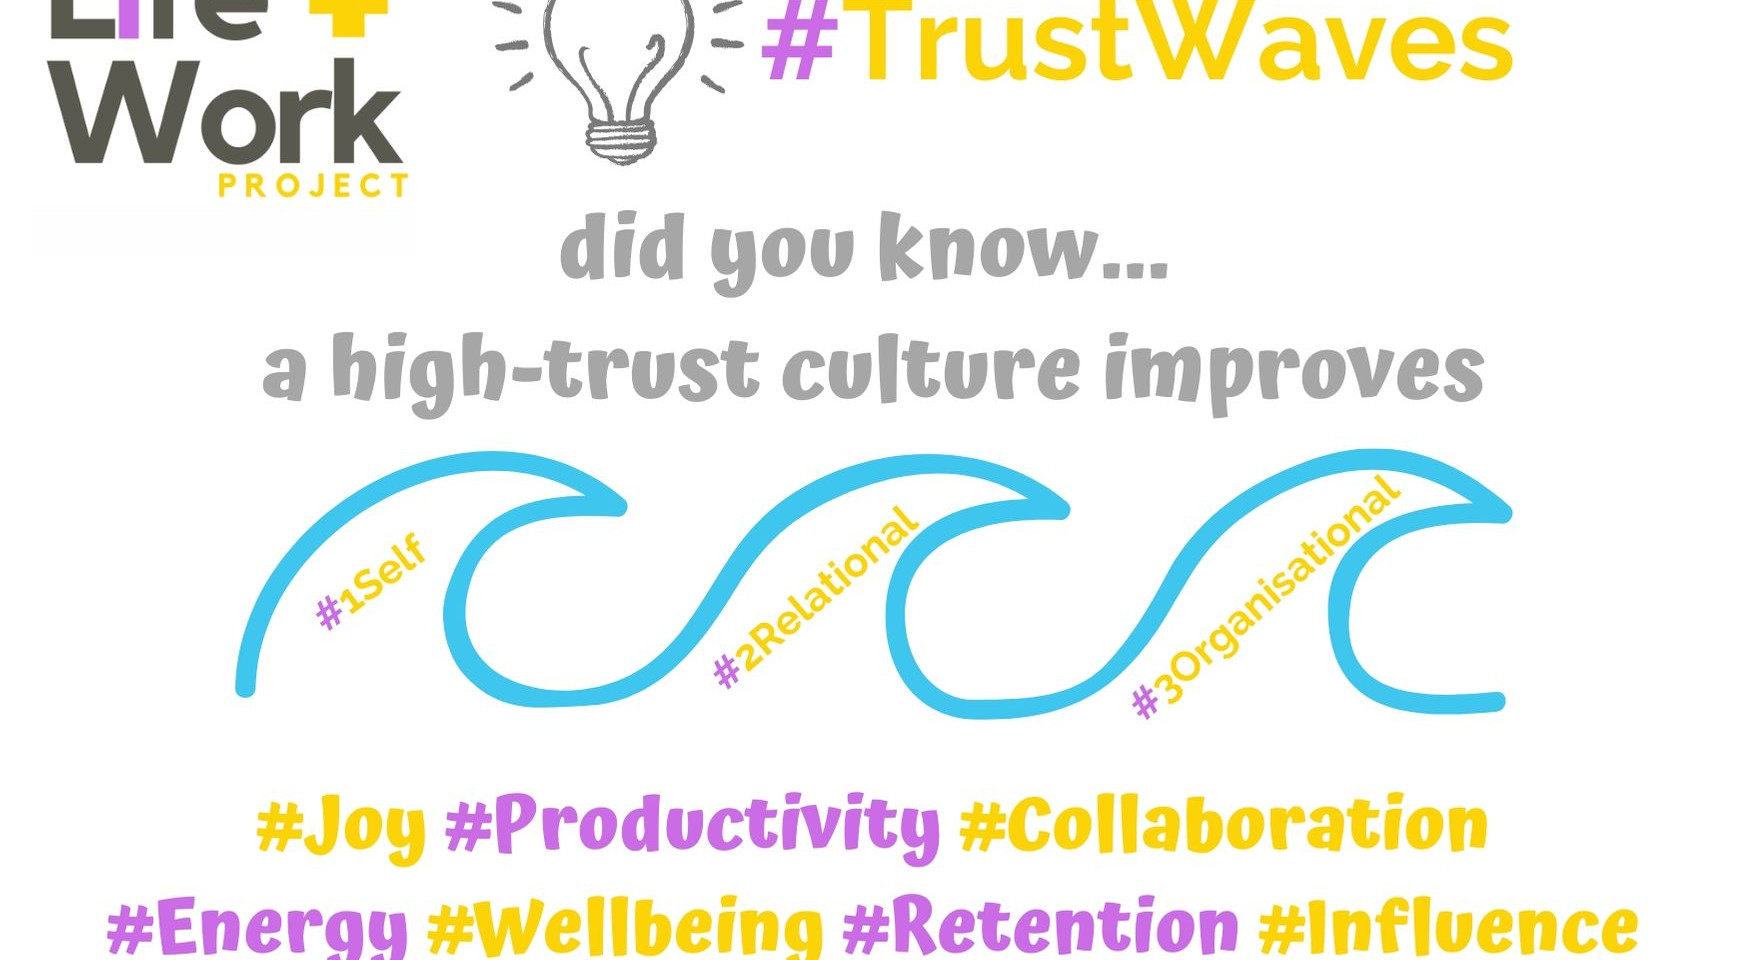 What waves could you improve trust?